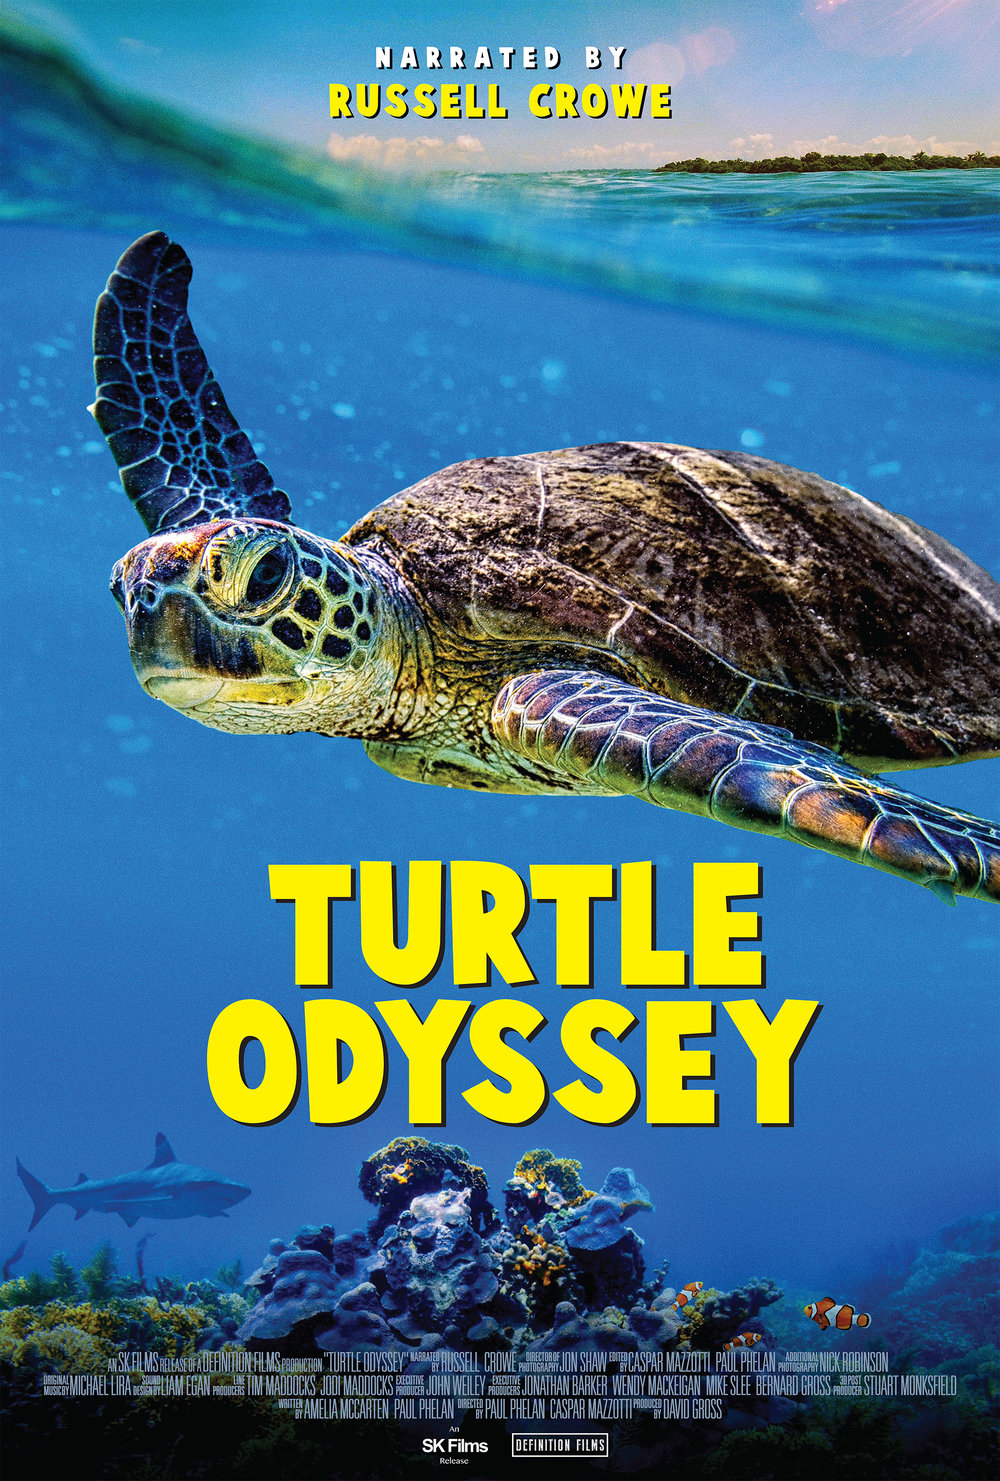 Turtle-Odyssey_27x40-Poster_2D_LowRes-Reference_CMYK.jpg